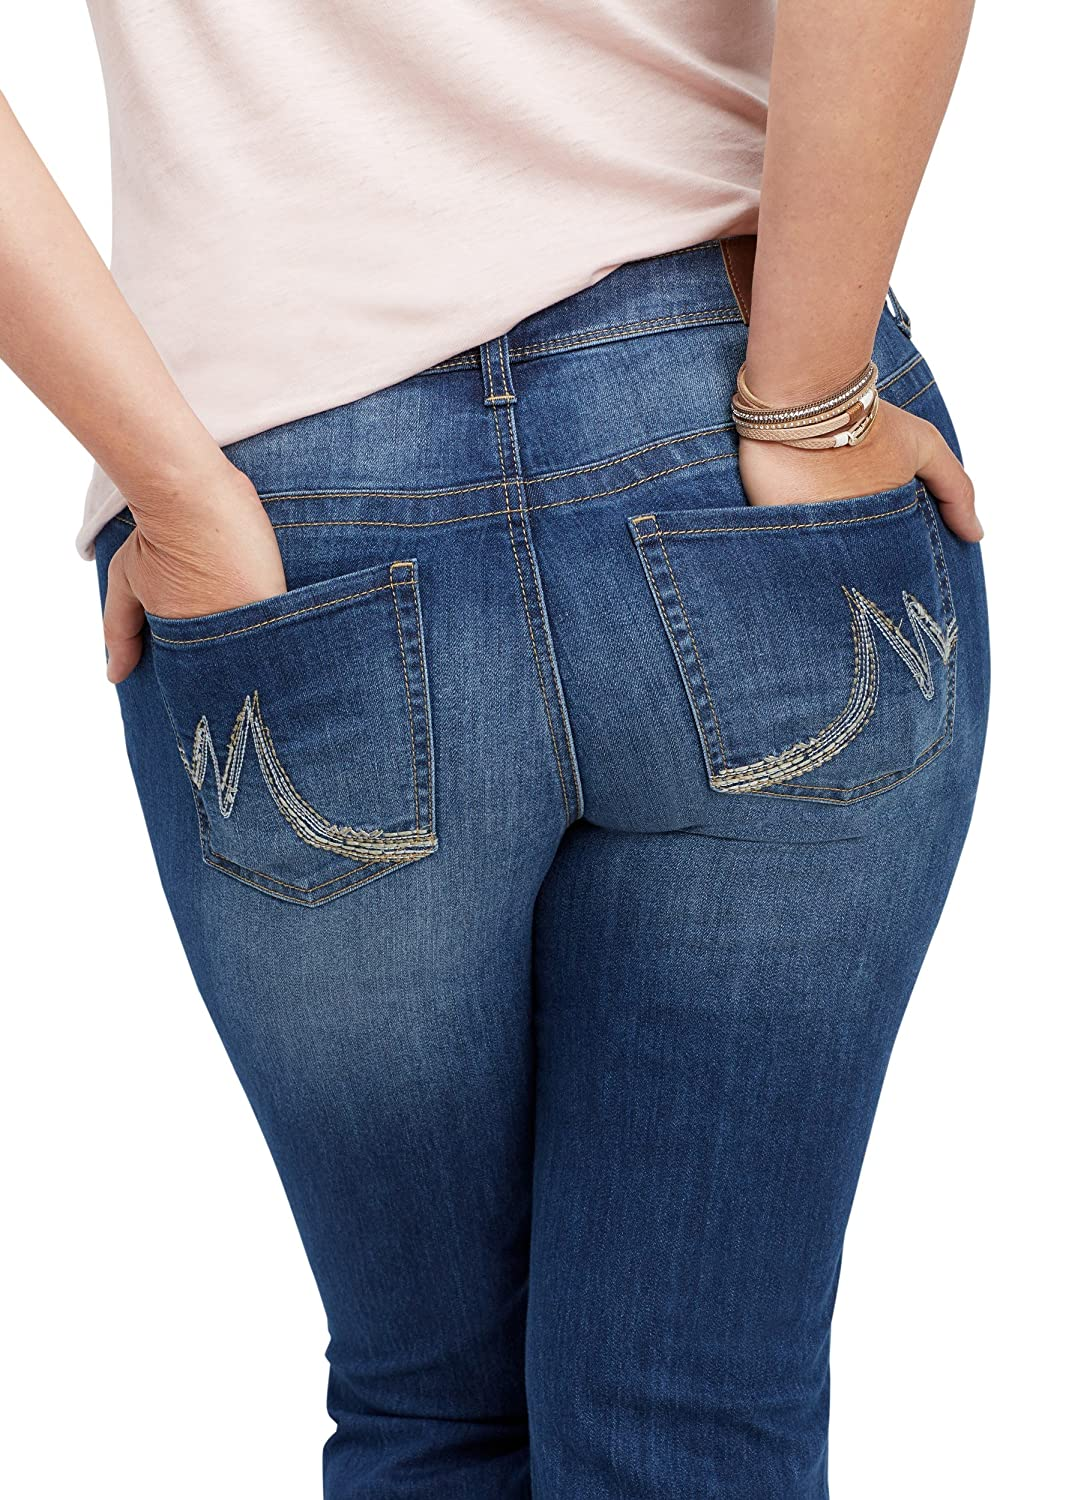 maurices Women's Plus Size Denimflex Medium Wash Bootcut Jean